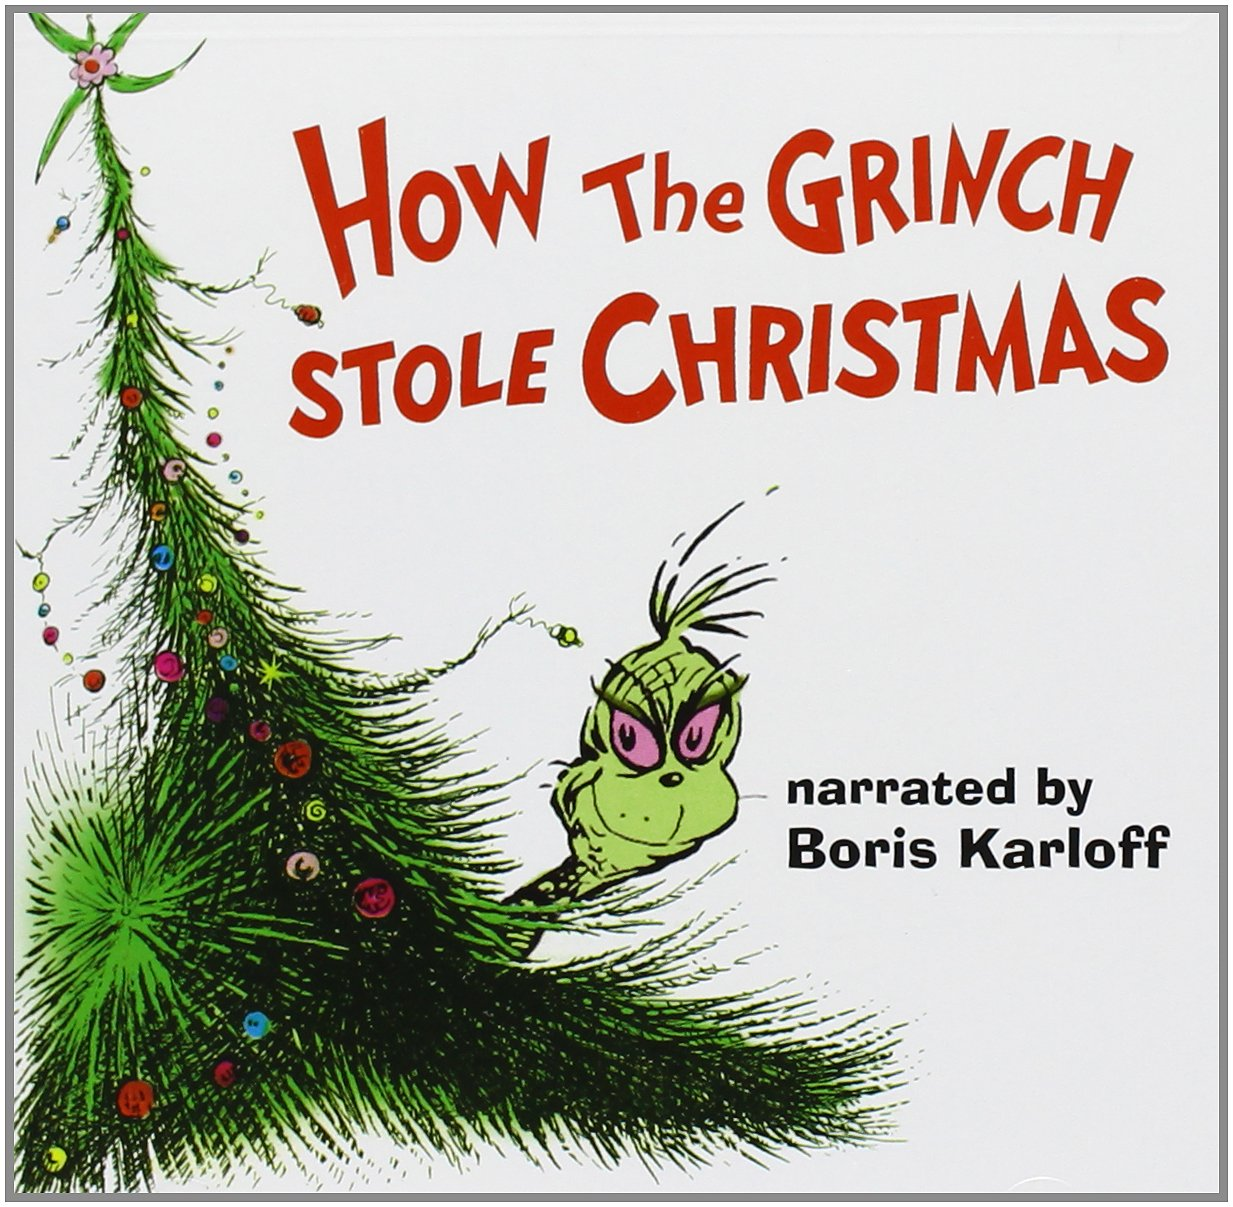 Boris Karloff - How The Grinch Stole Christmas (1966 TV Film ...